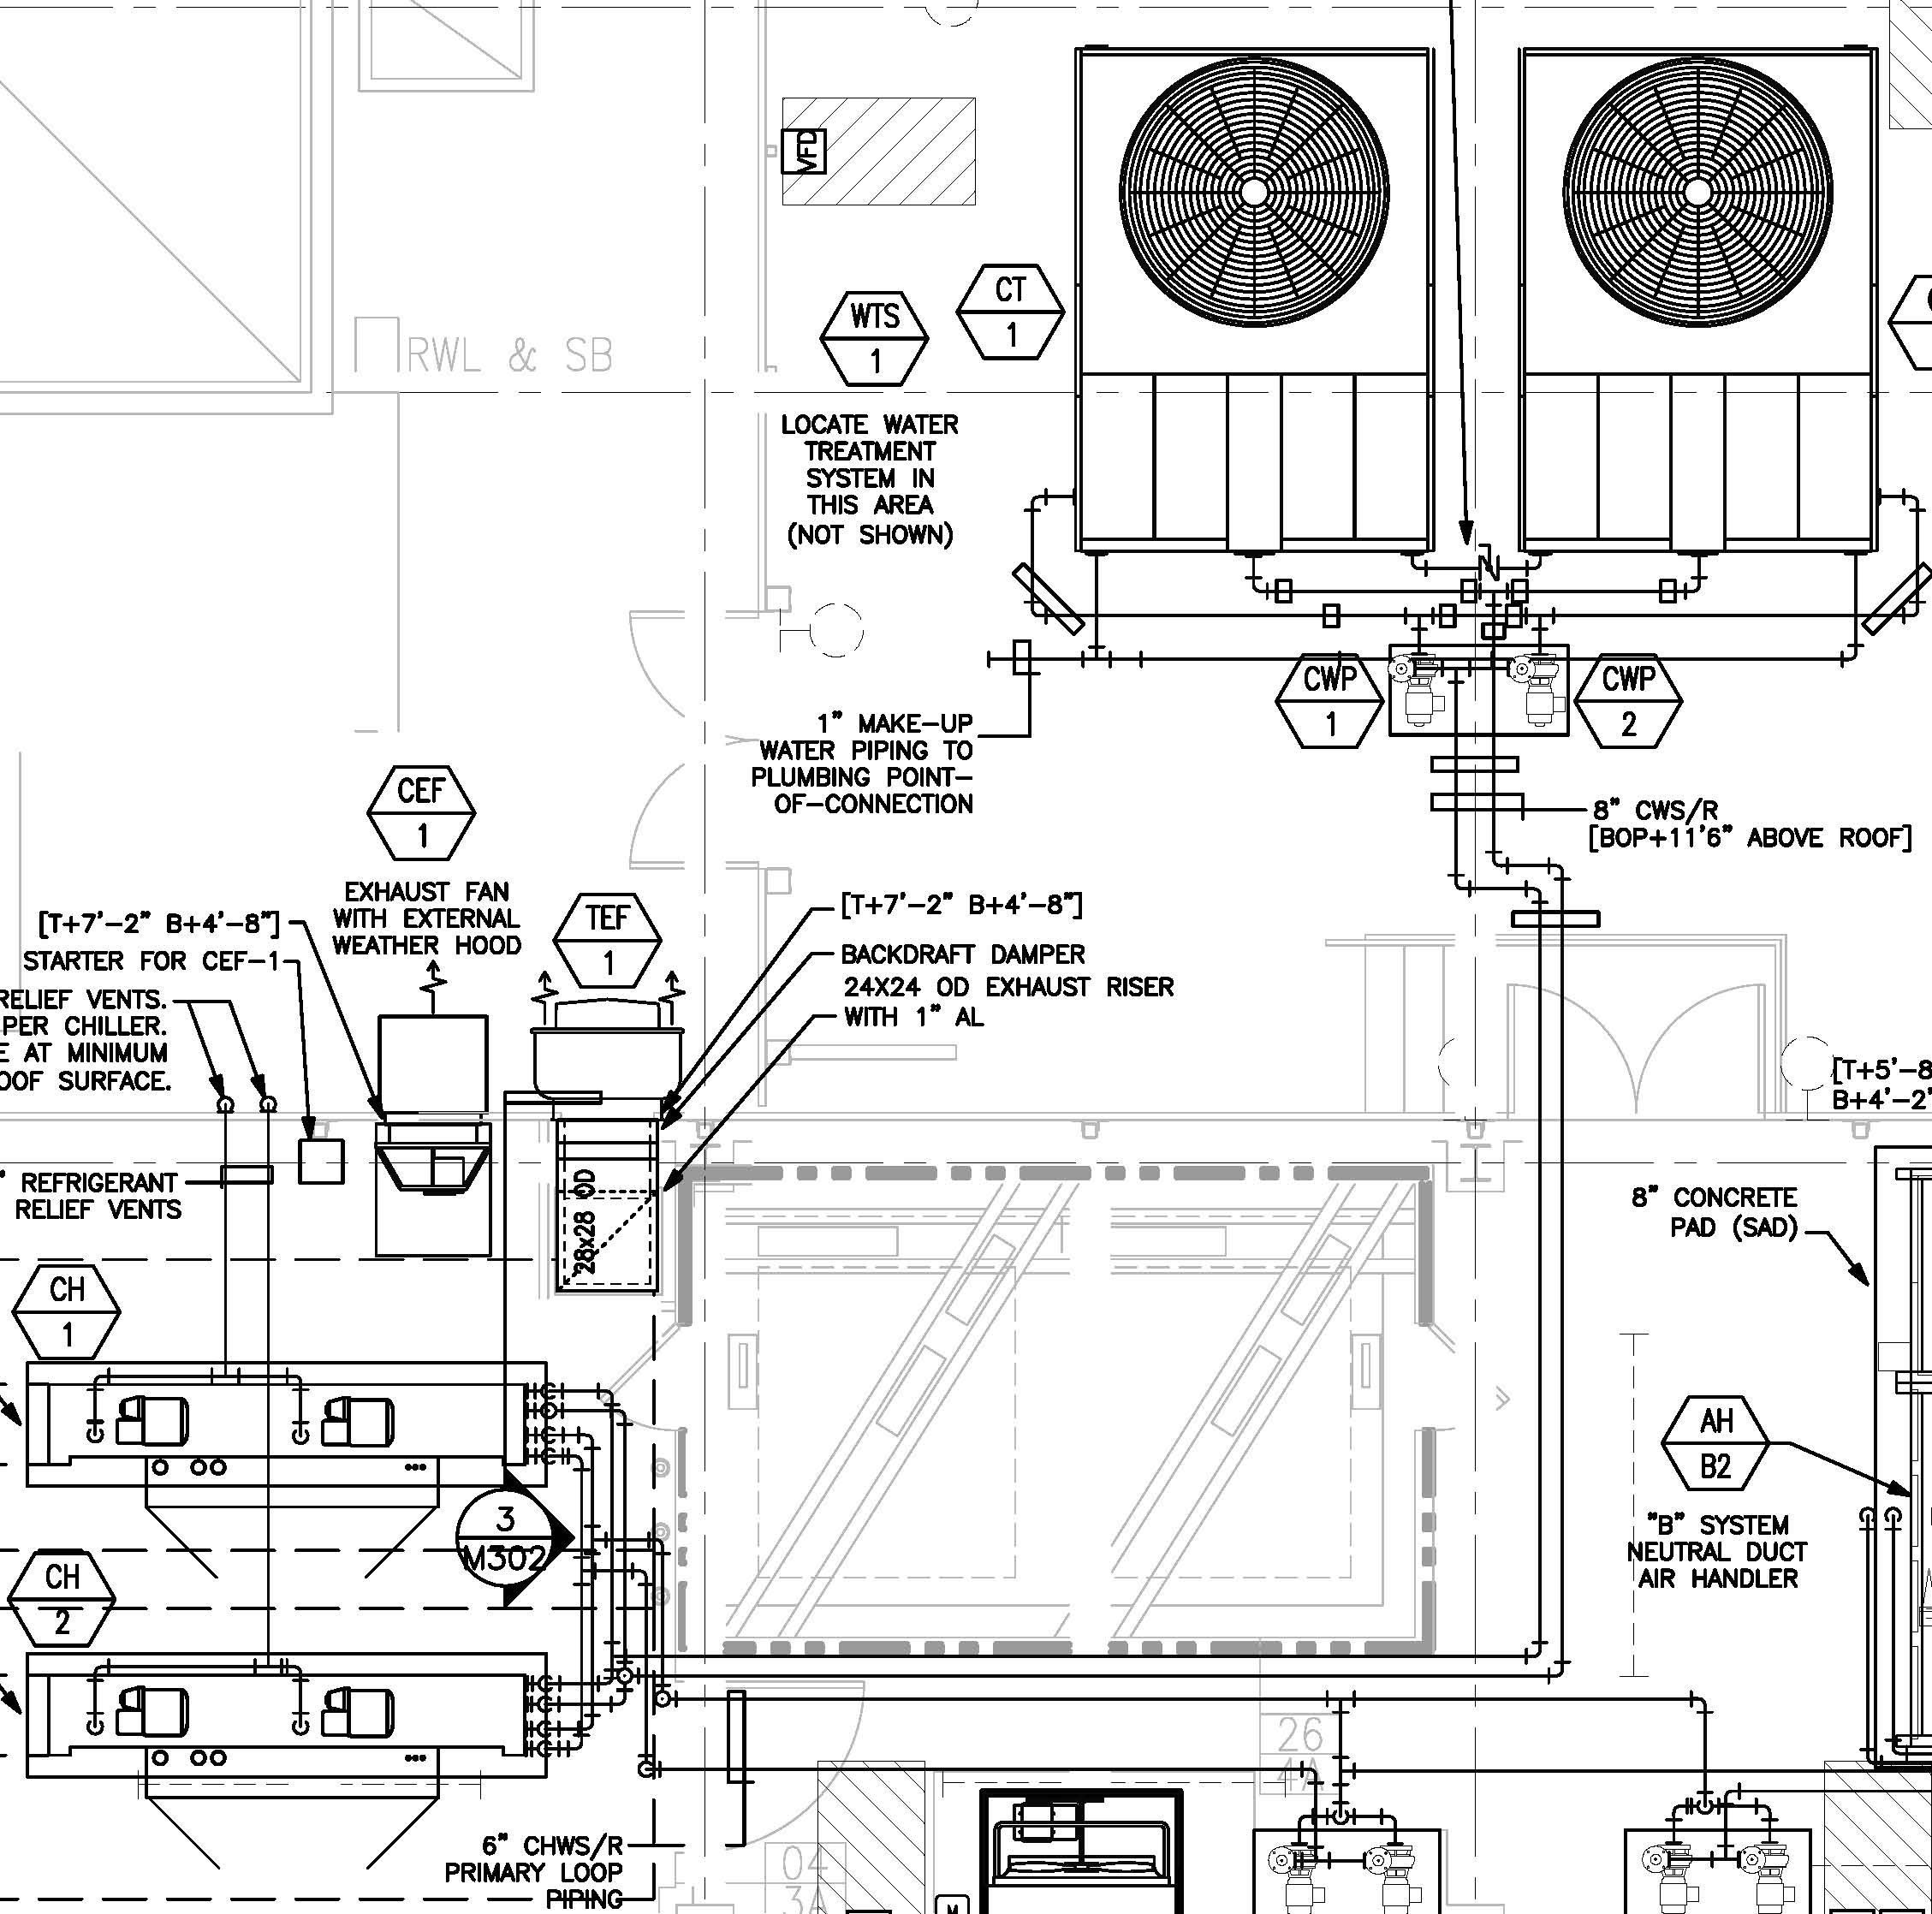 Air Cooled Engine Diagram Chiller Wiring Diagram Wiring Diagram for You Of Air Cooled Engine Diagram